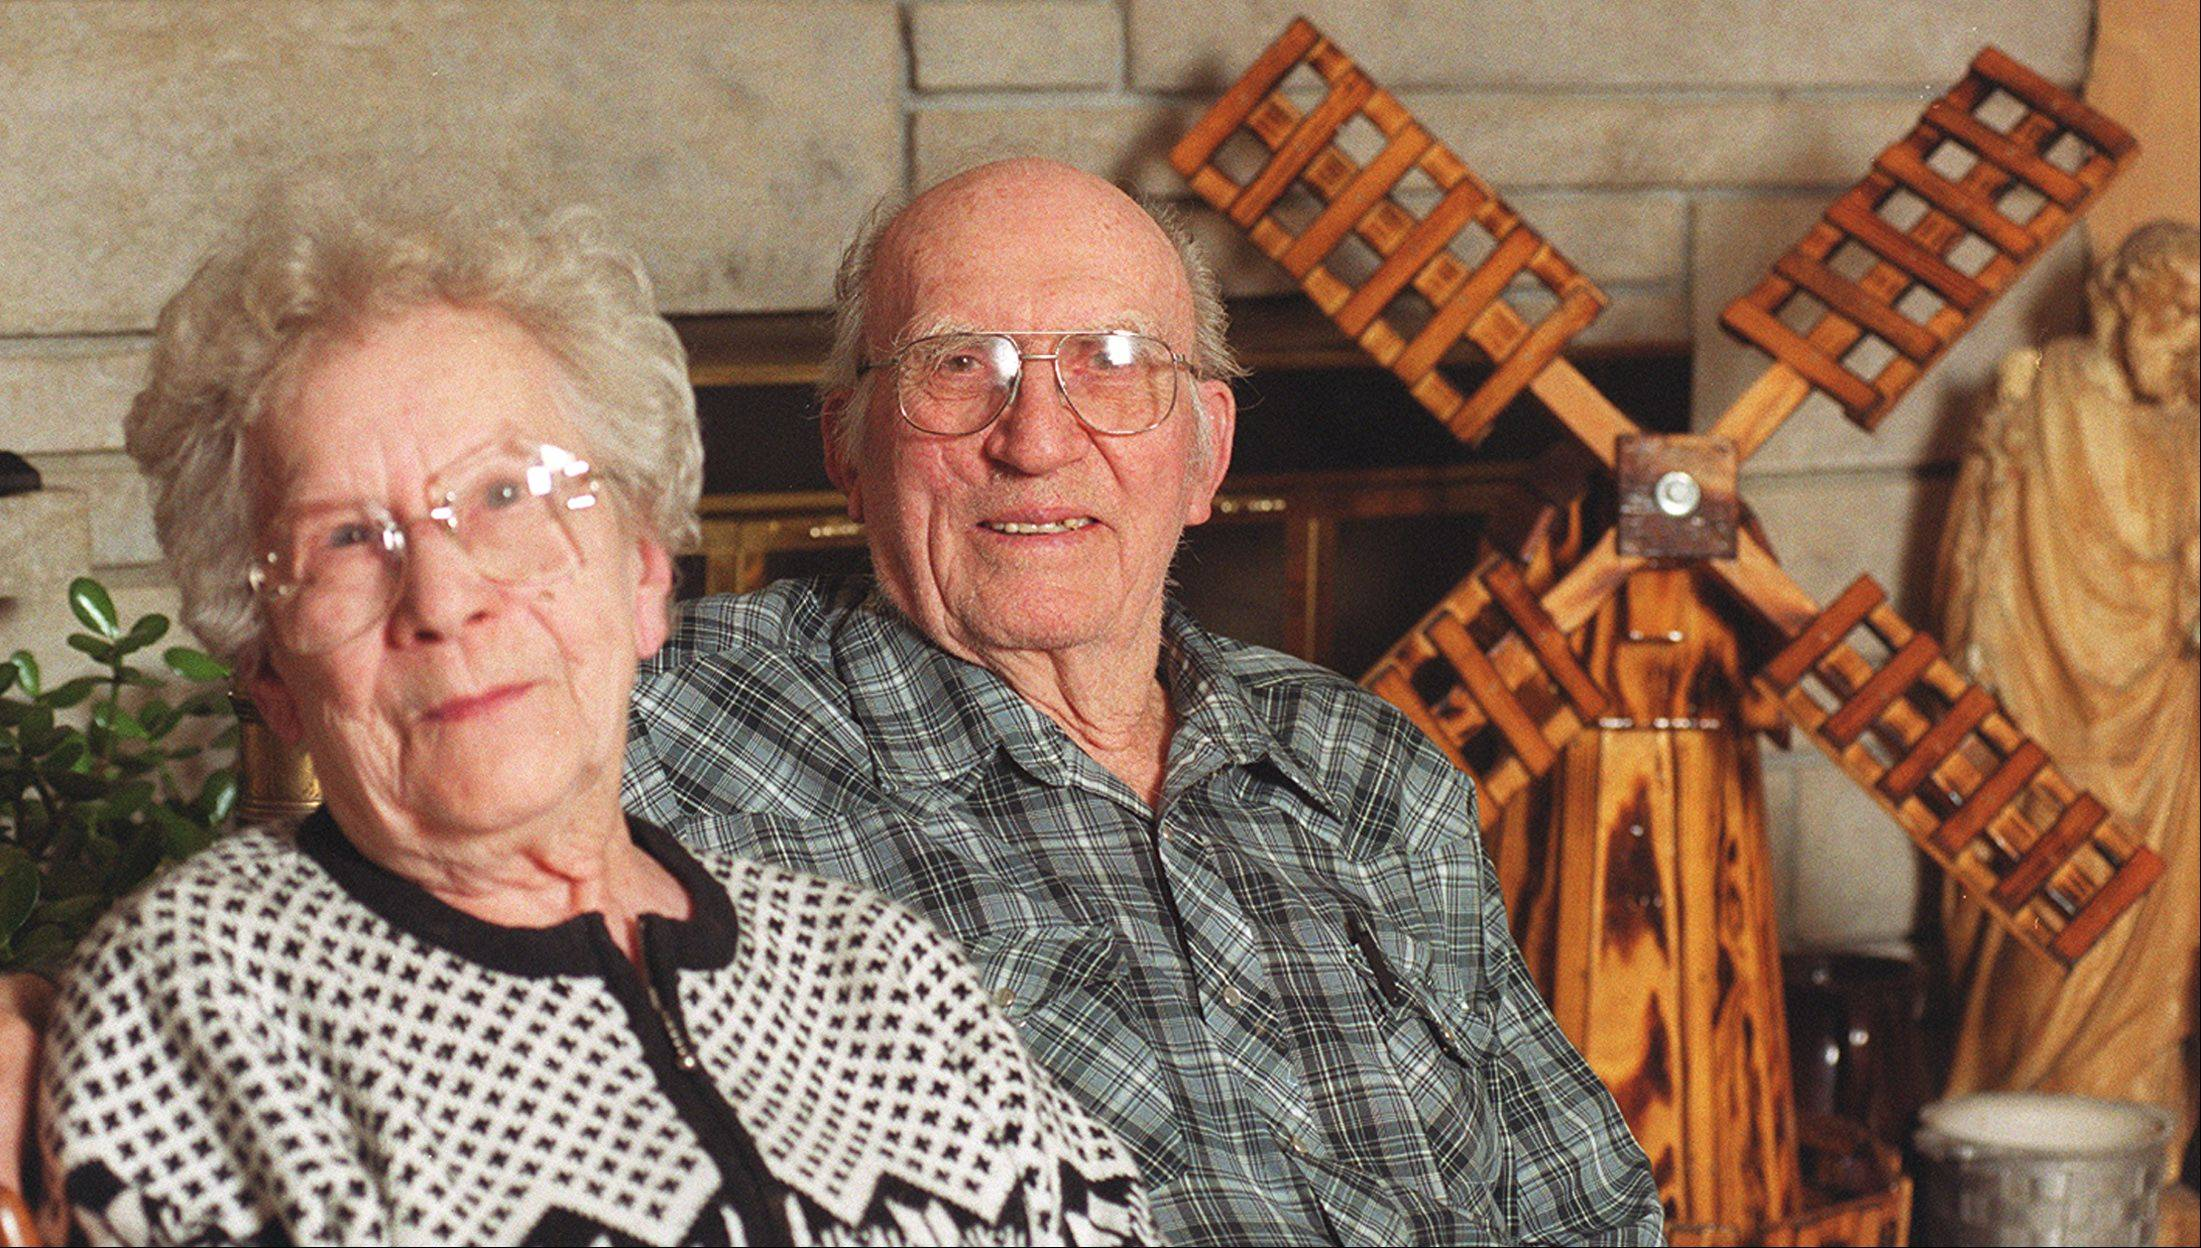 Fran and George Gebes of Batavia were the 2002 Batavia Citizens of the Year. George died Monday, at age 98. Fran died in 2011. They helped co-found the Batavia Overseas Post 1197, Veterans of Foreign Wars. George was also an alderman.